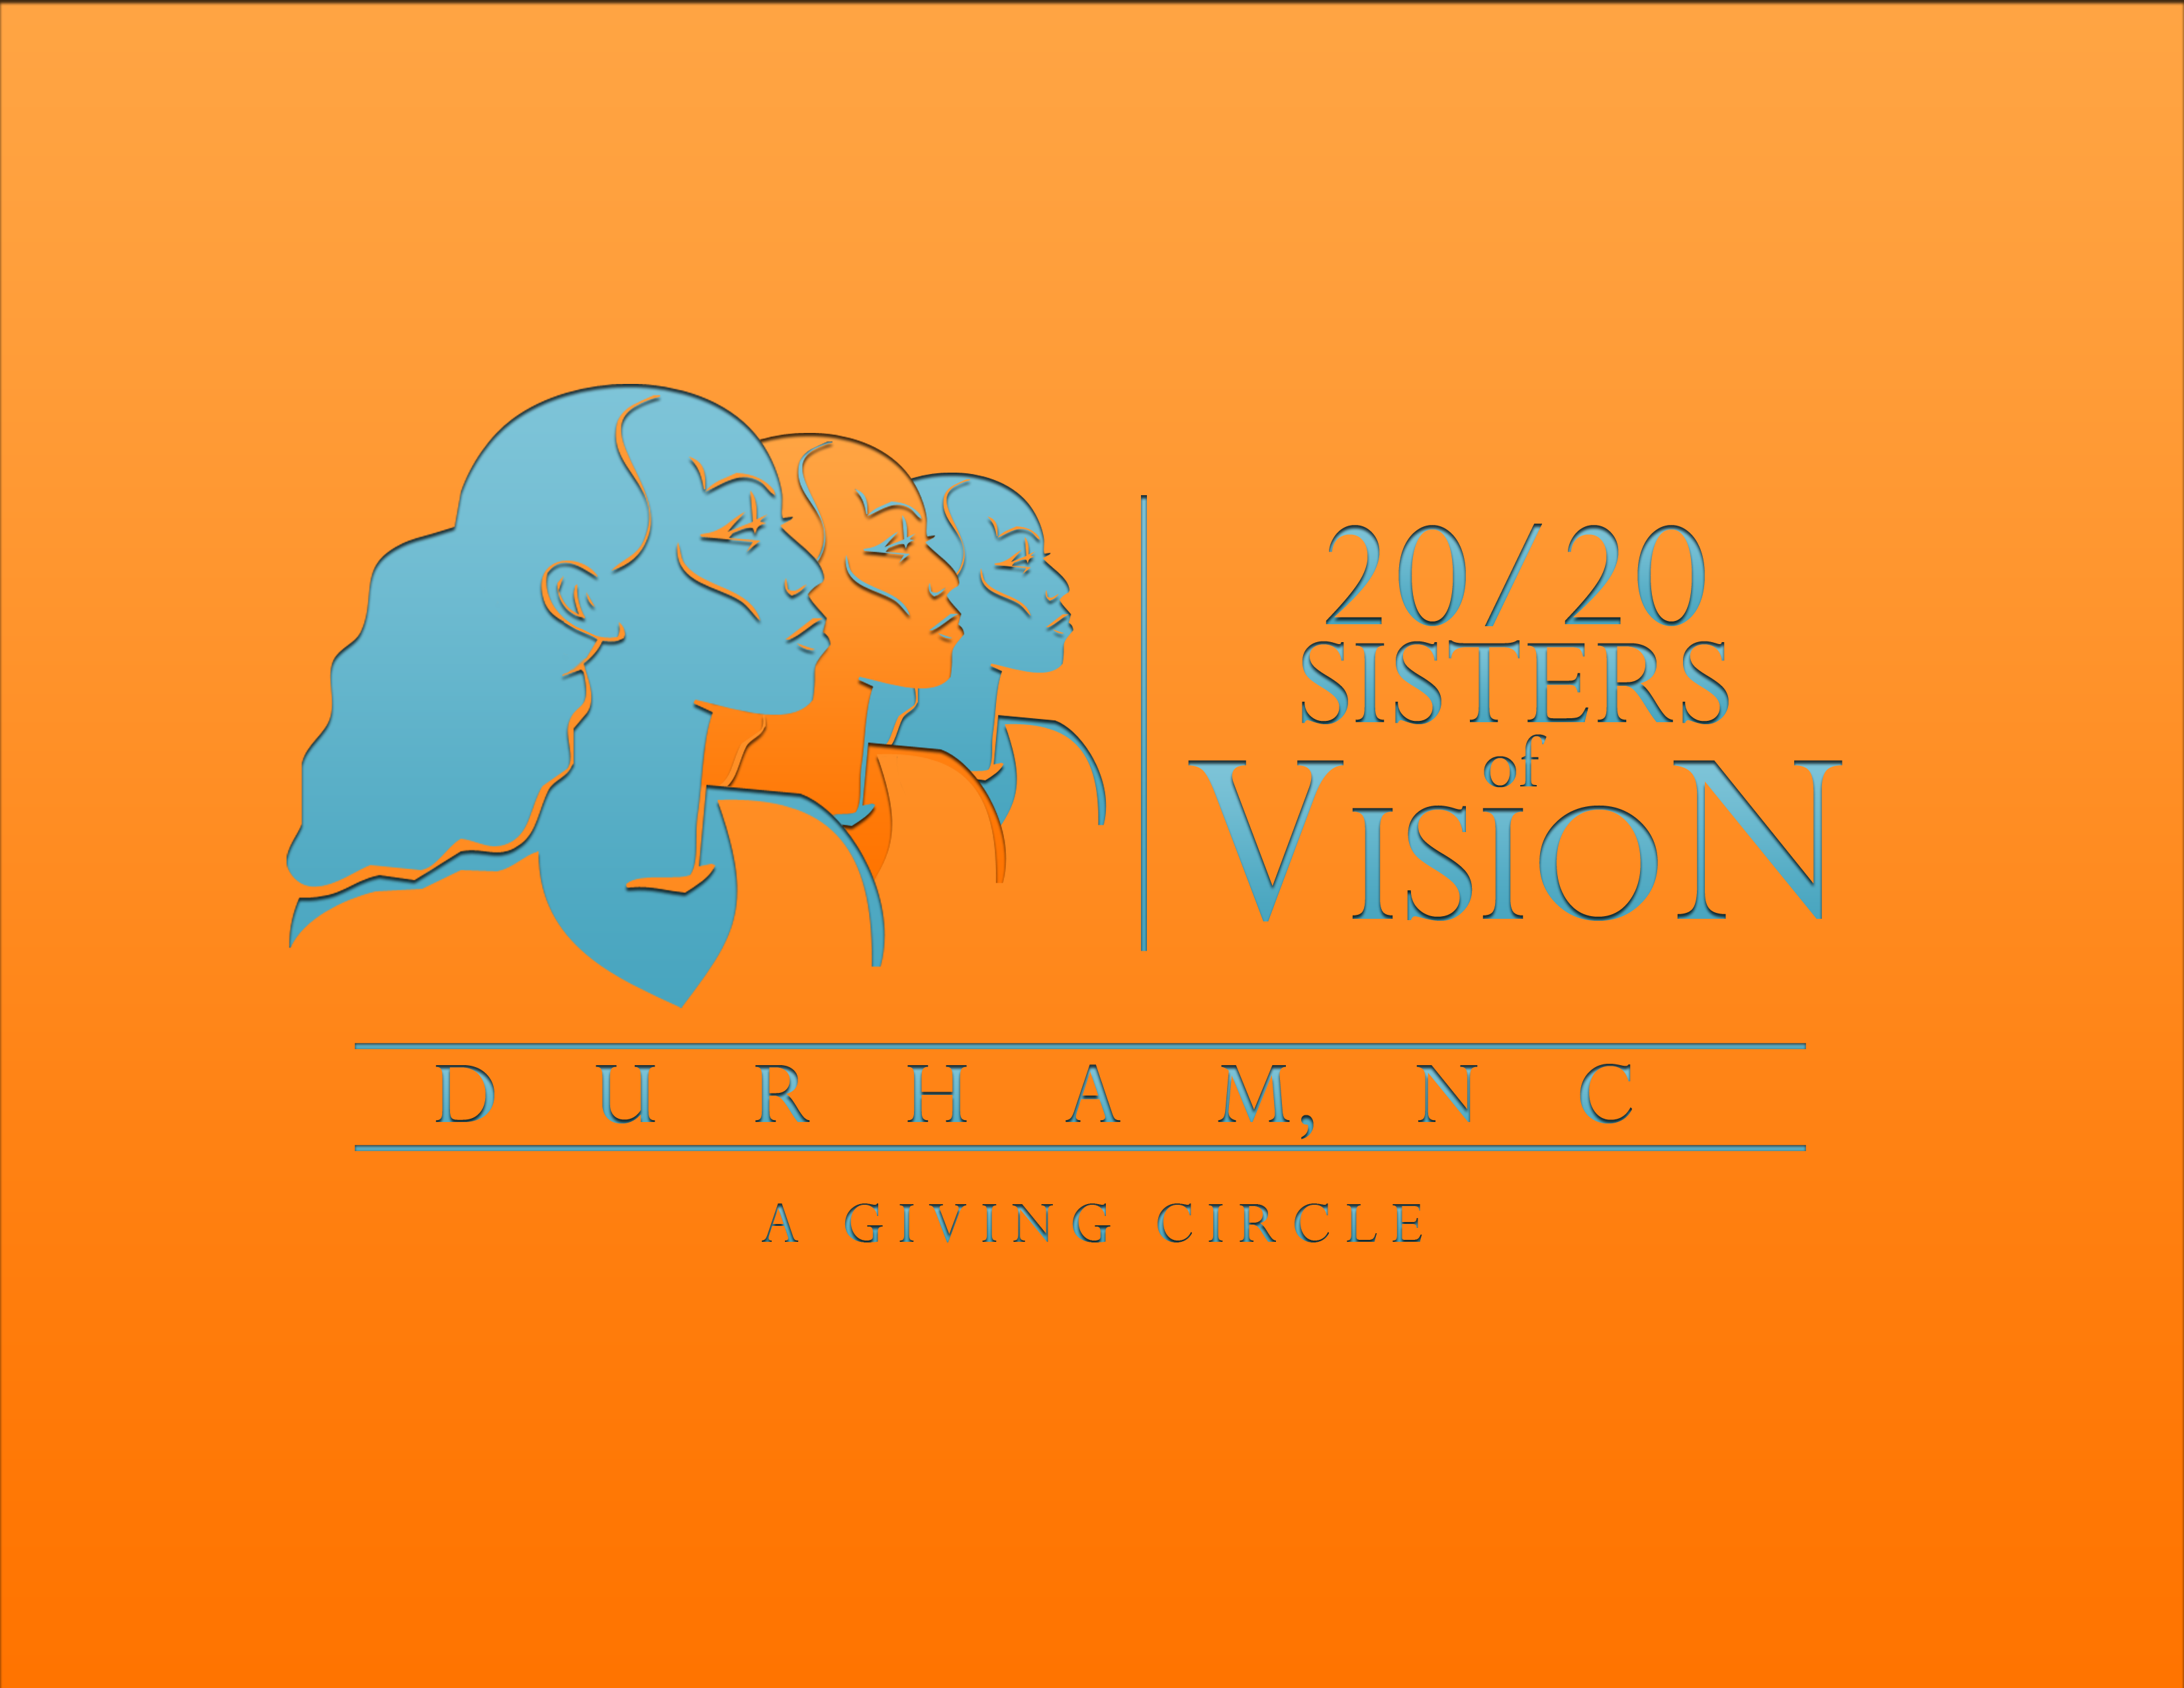 20/20 Sisters of Vision